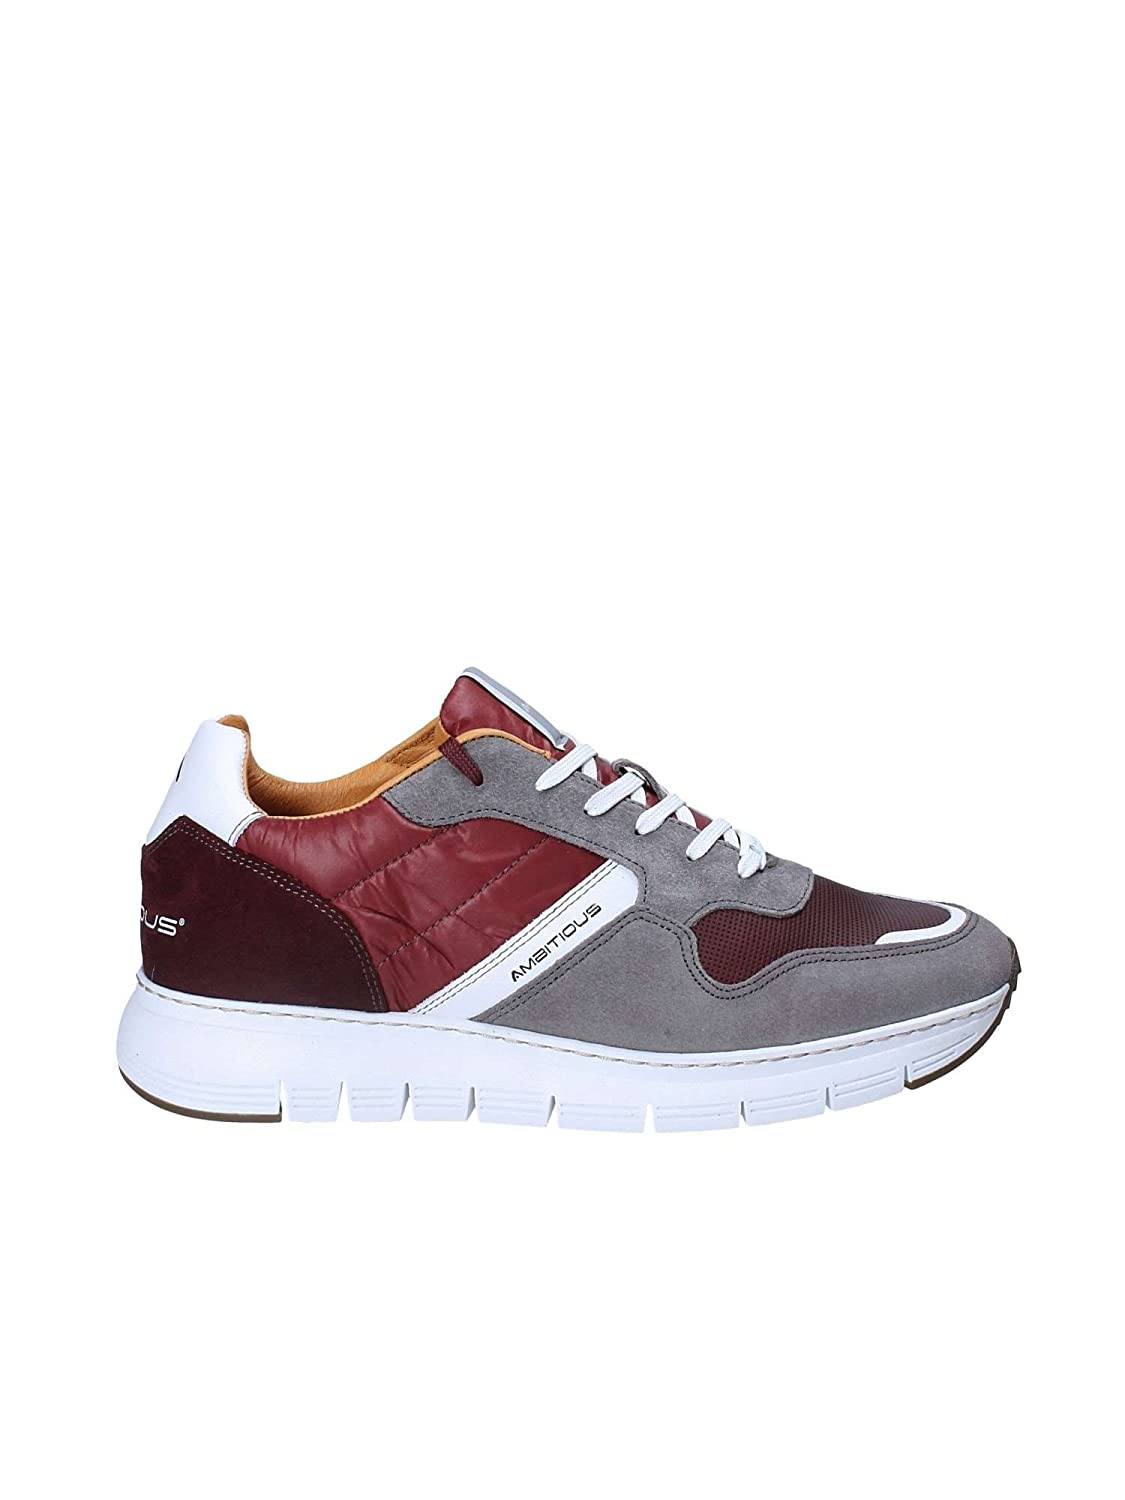 Ambitious 8283 Sneakers Man Rouge 44